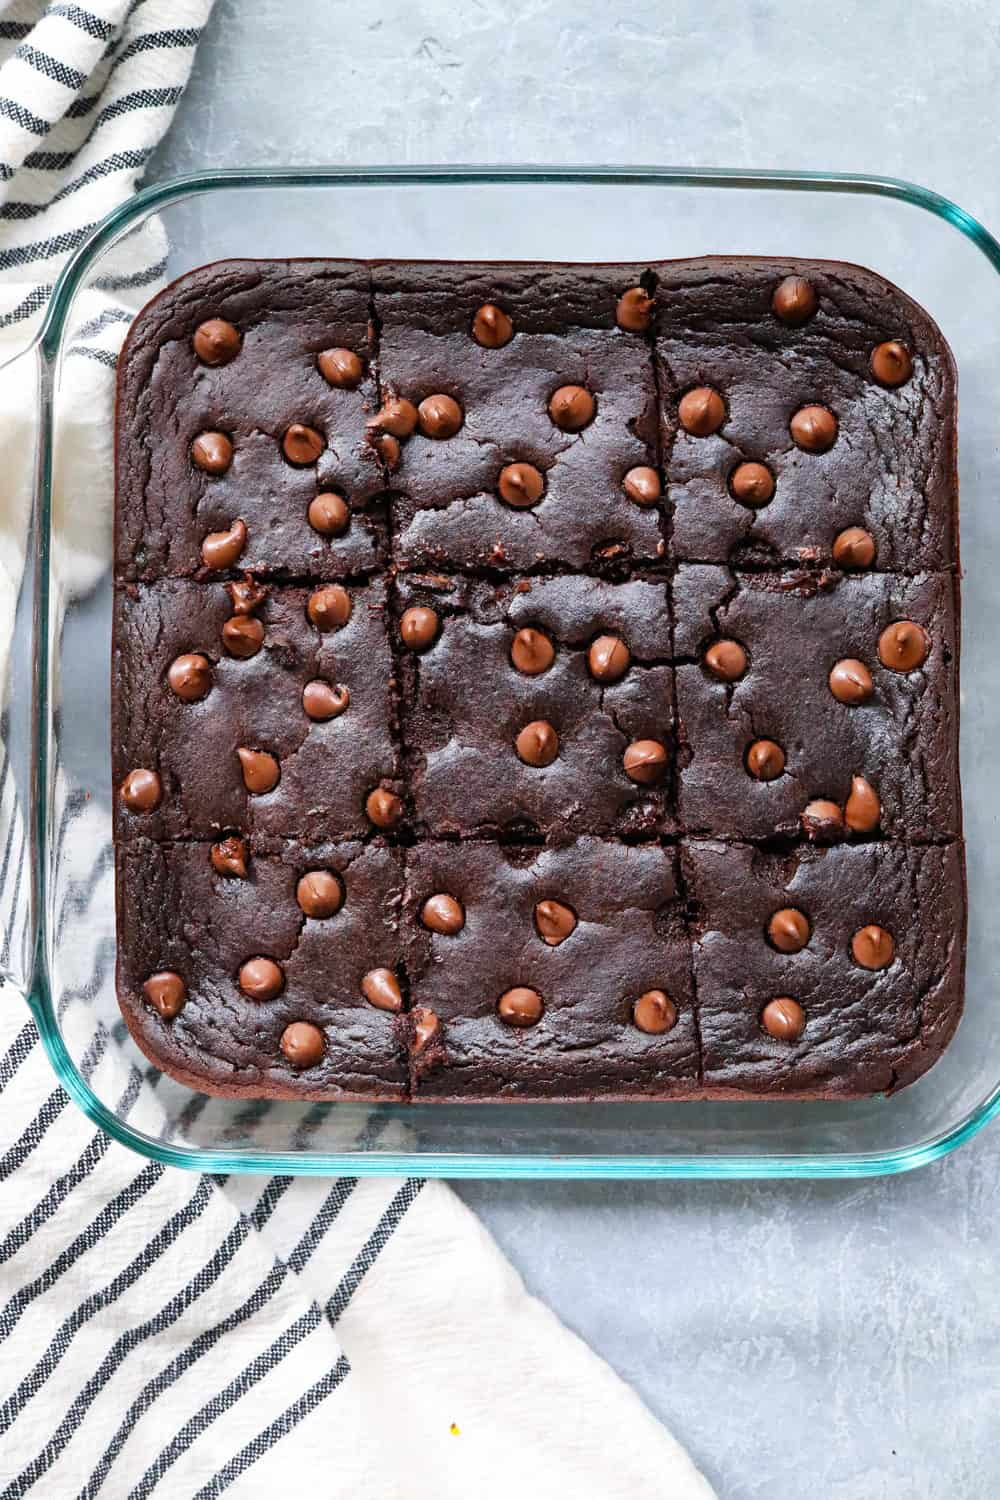 baked brownies in a pan, sliced into squares